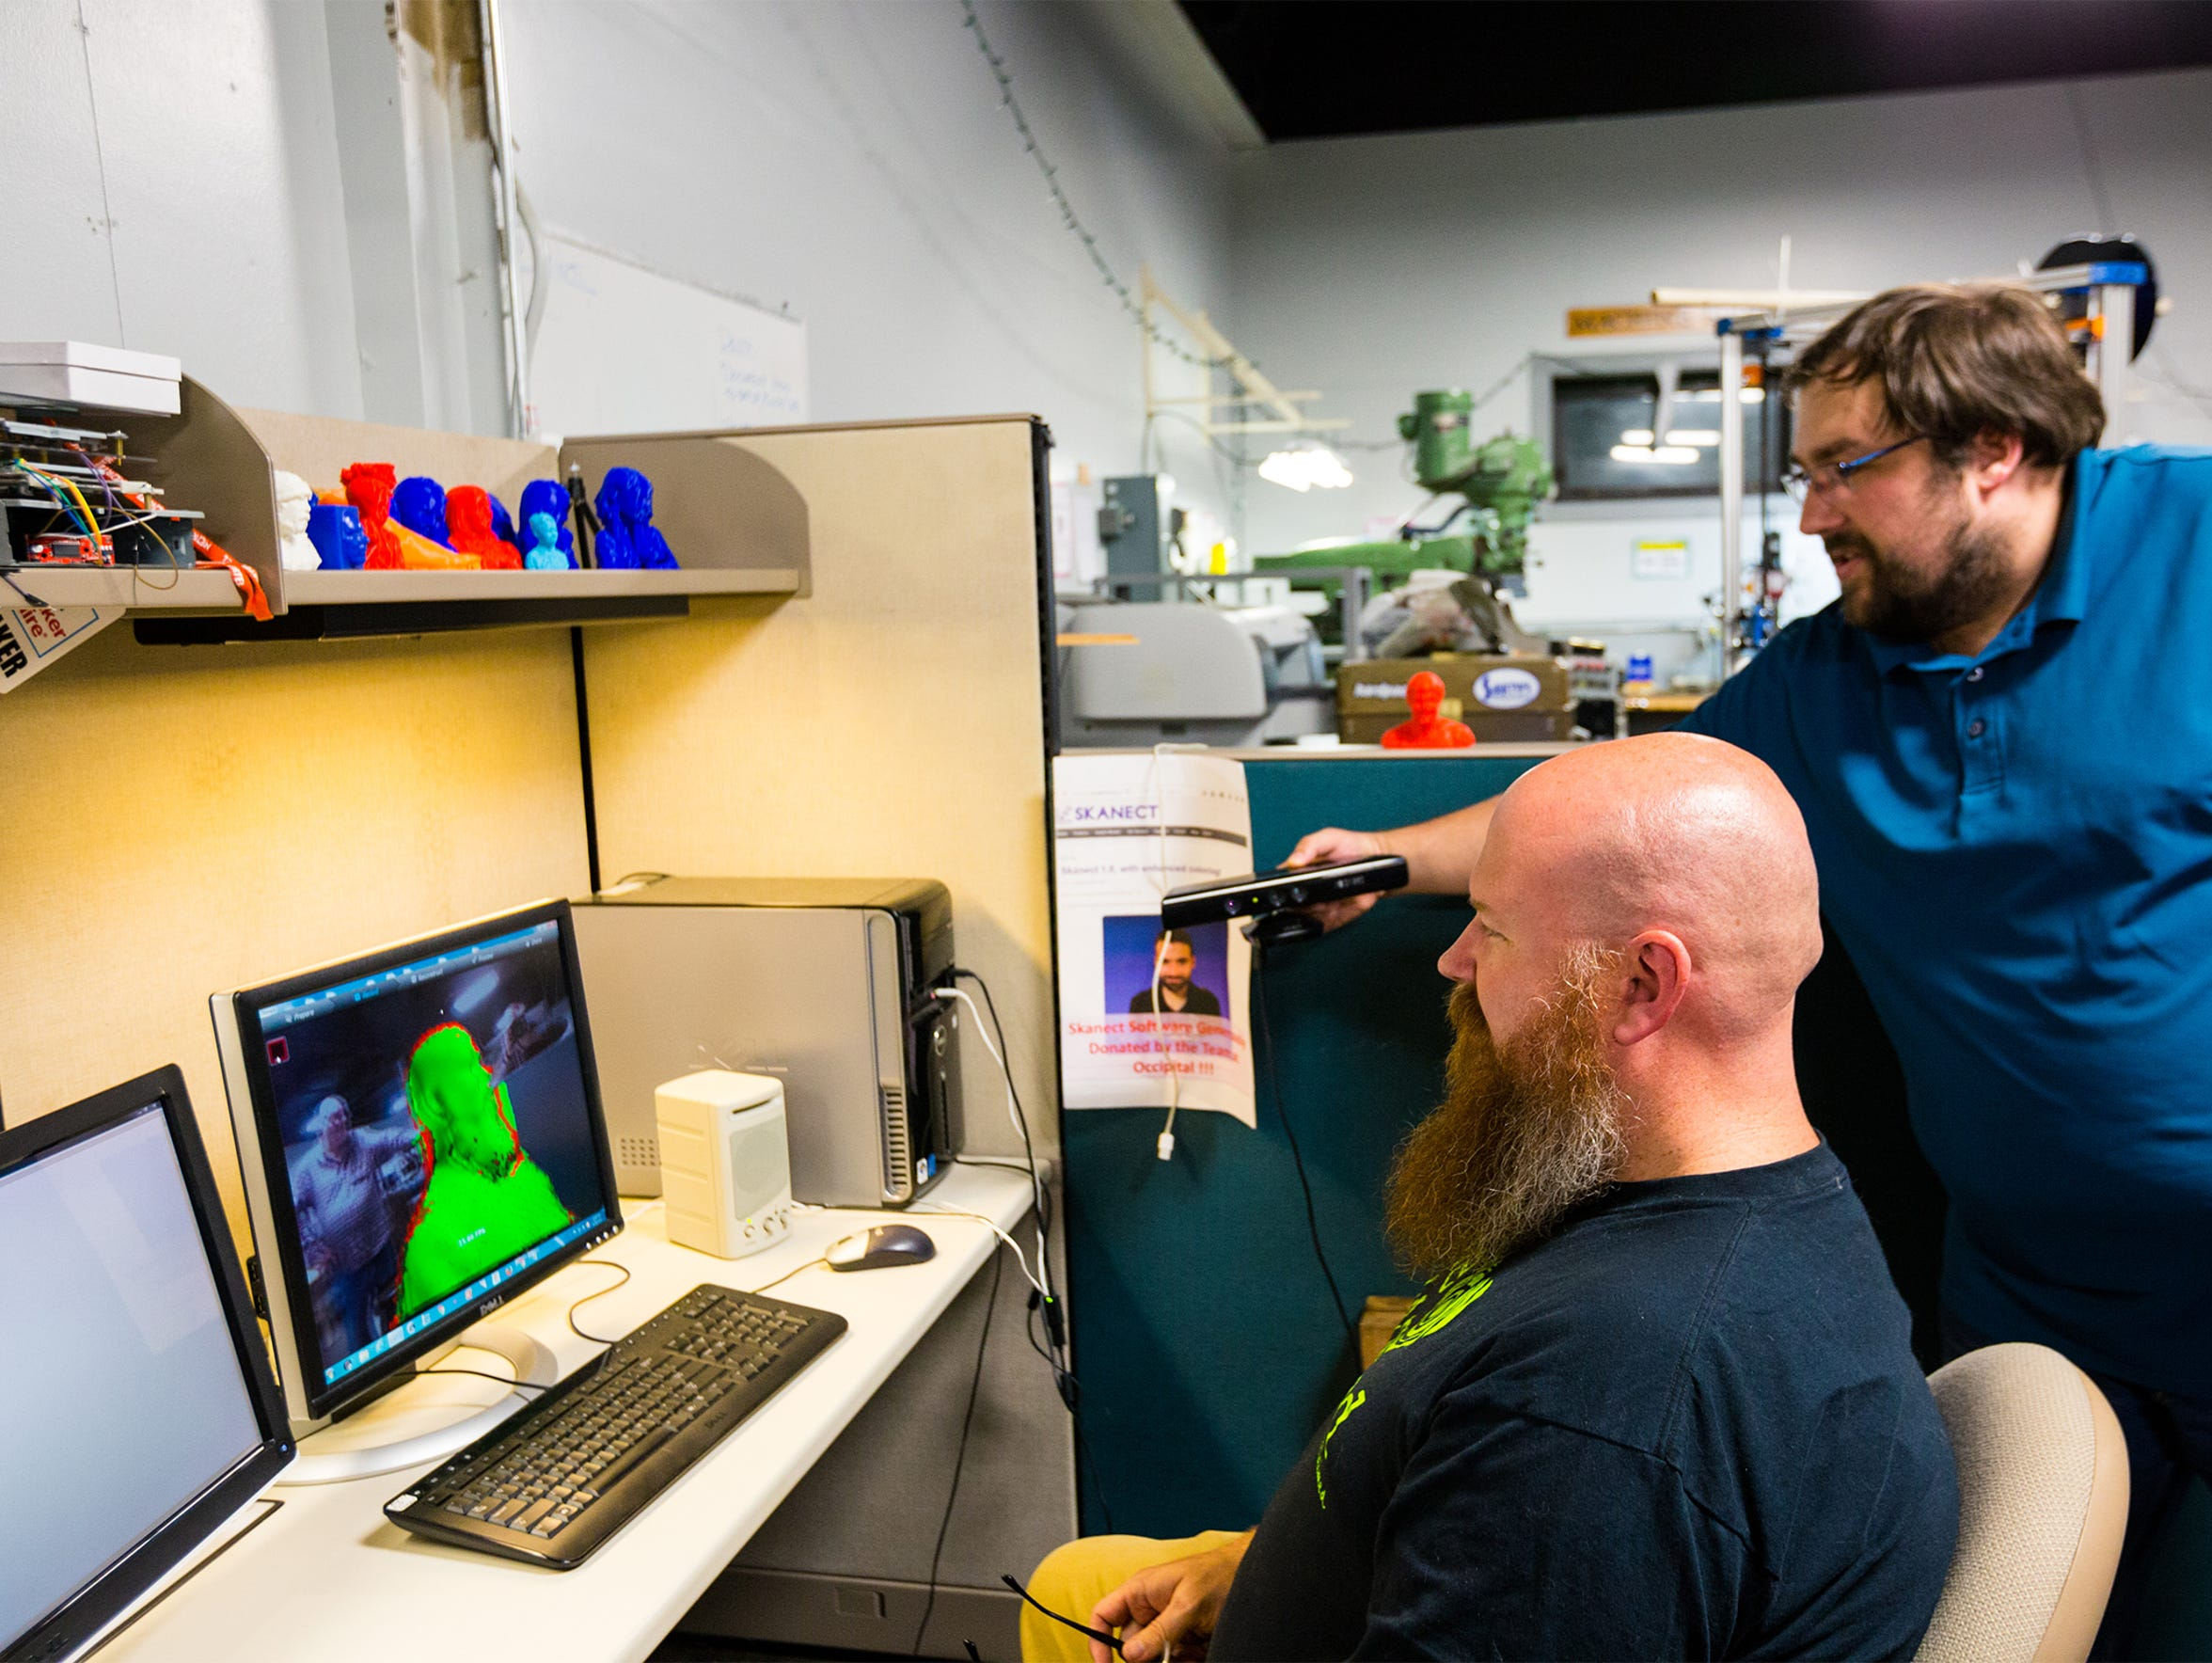 Kevin Besig does a 3D scan of Magnus Champlin to prepare